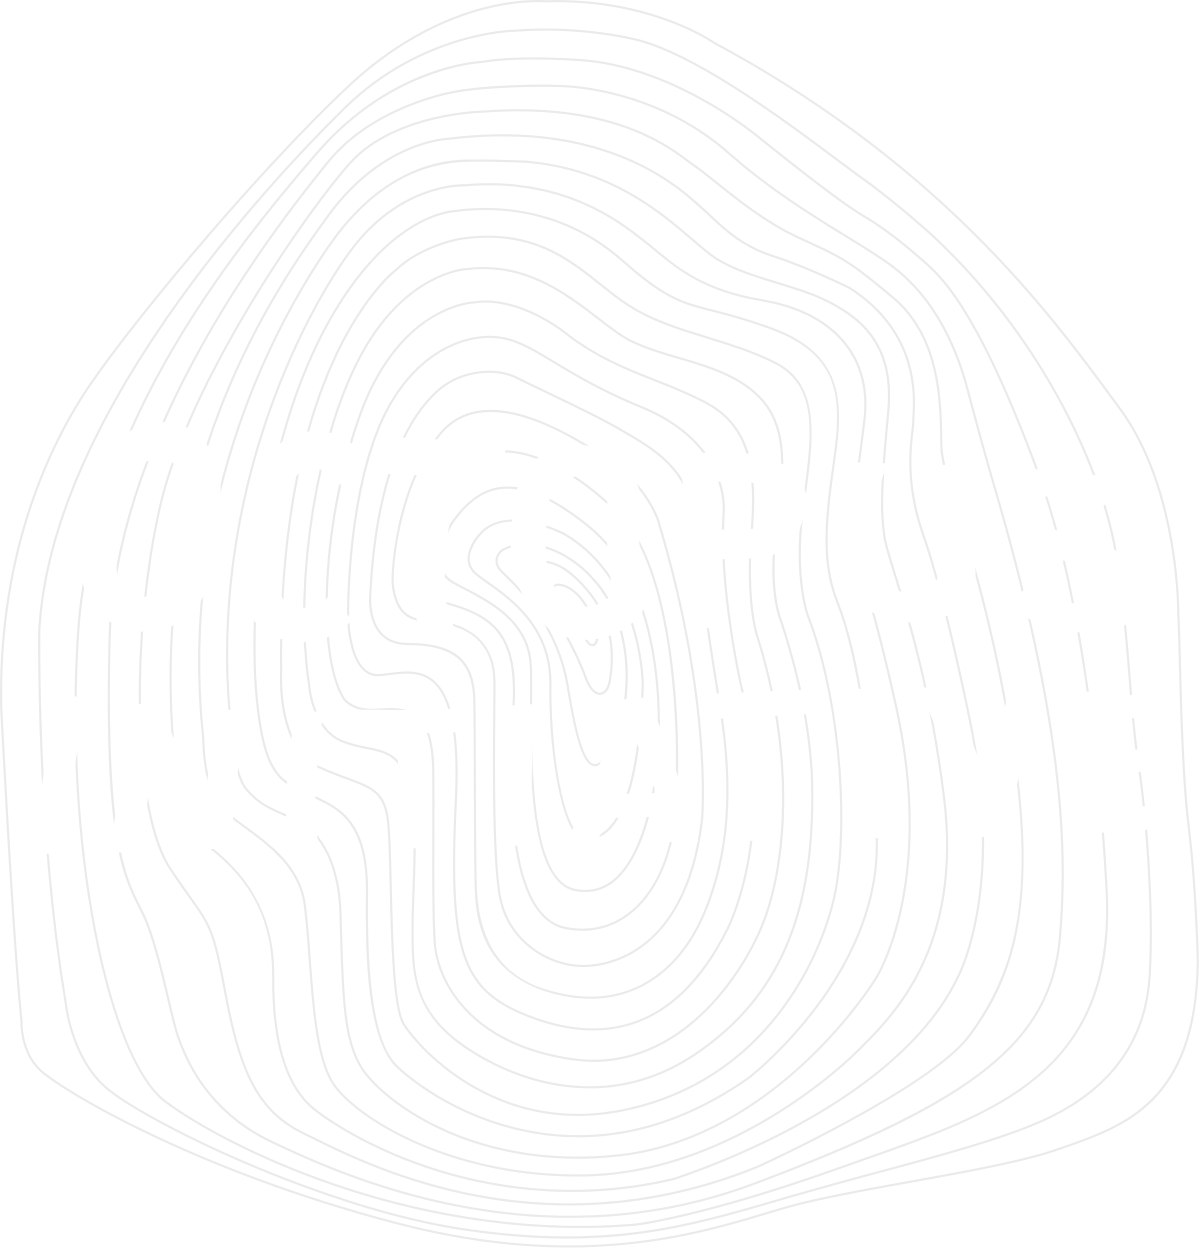 The Octopus Initiative logo